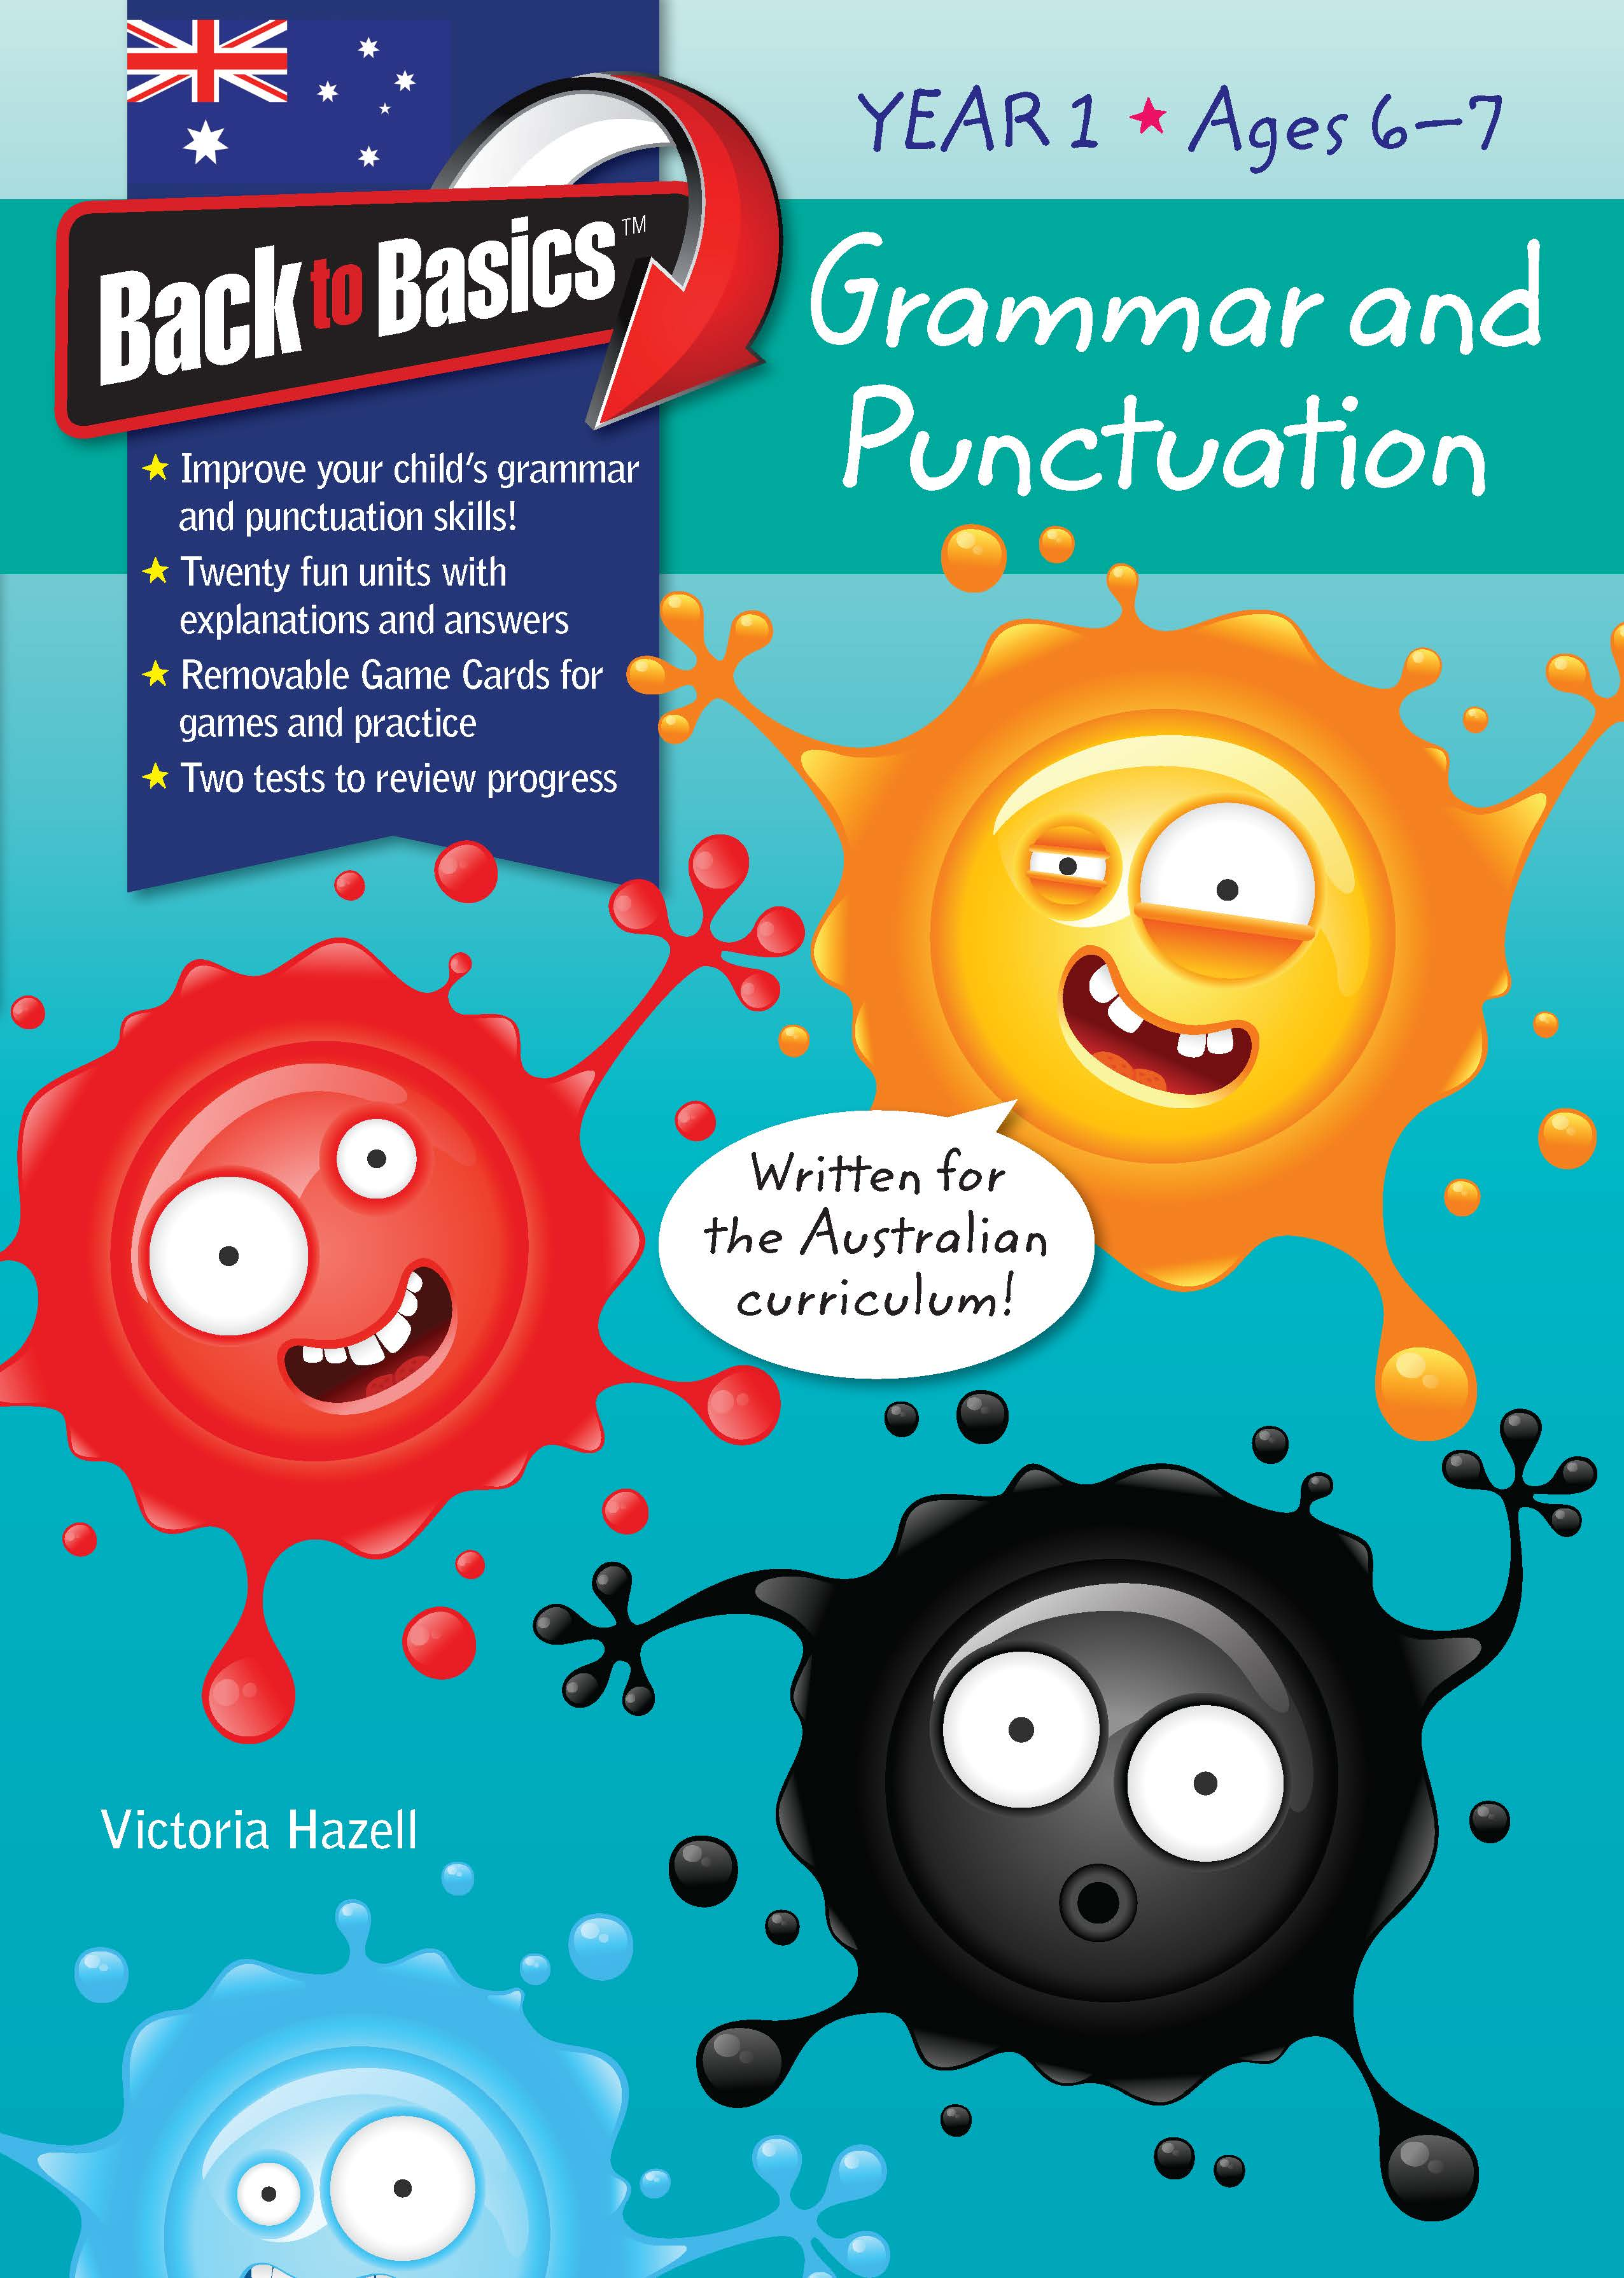 Back to Basics - Grammar & Punctuation Year 1